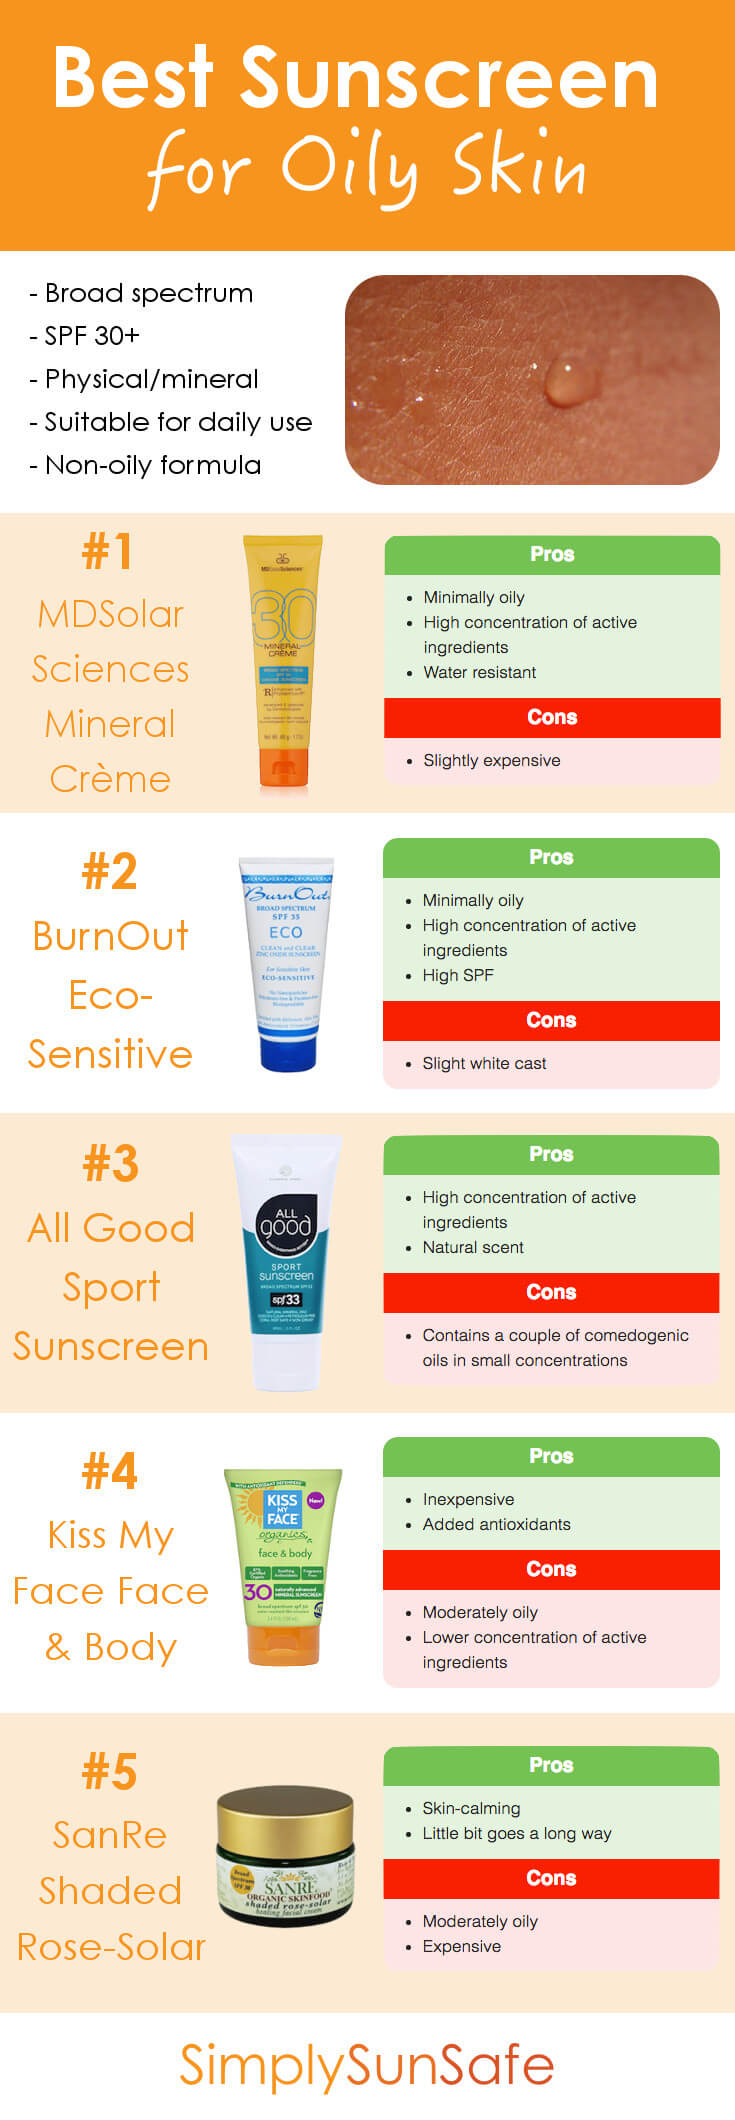 Best Sunscreen for Oily Skin Pinterest